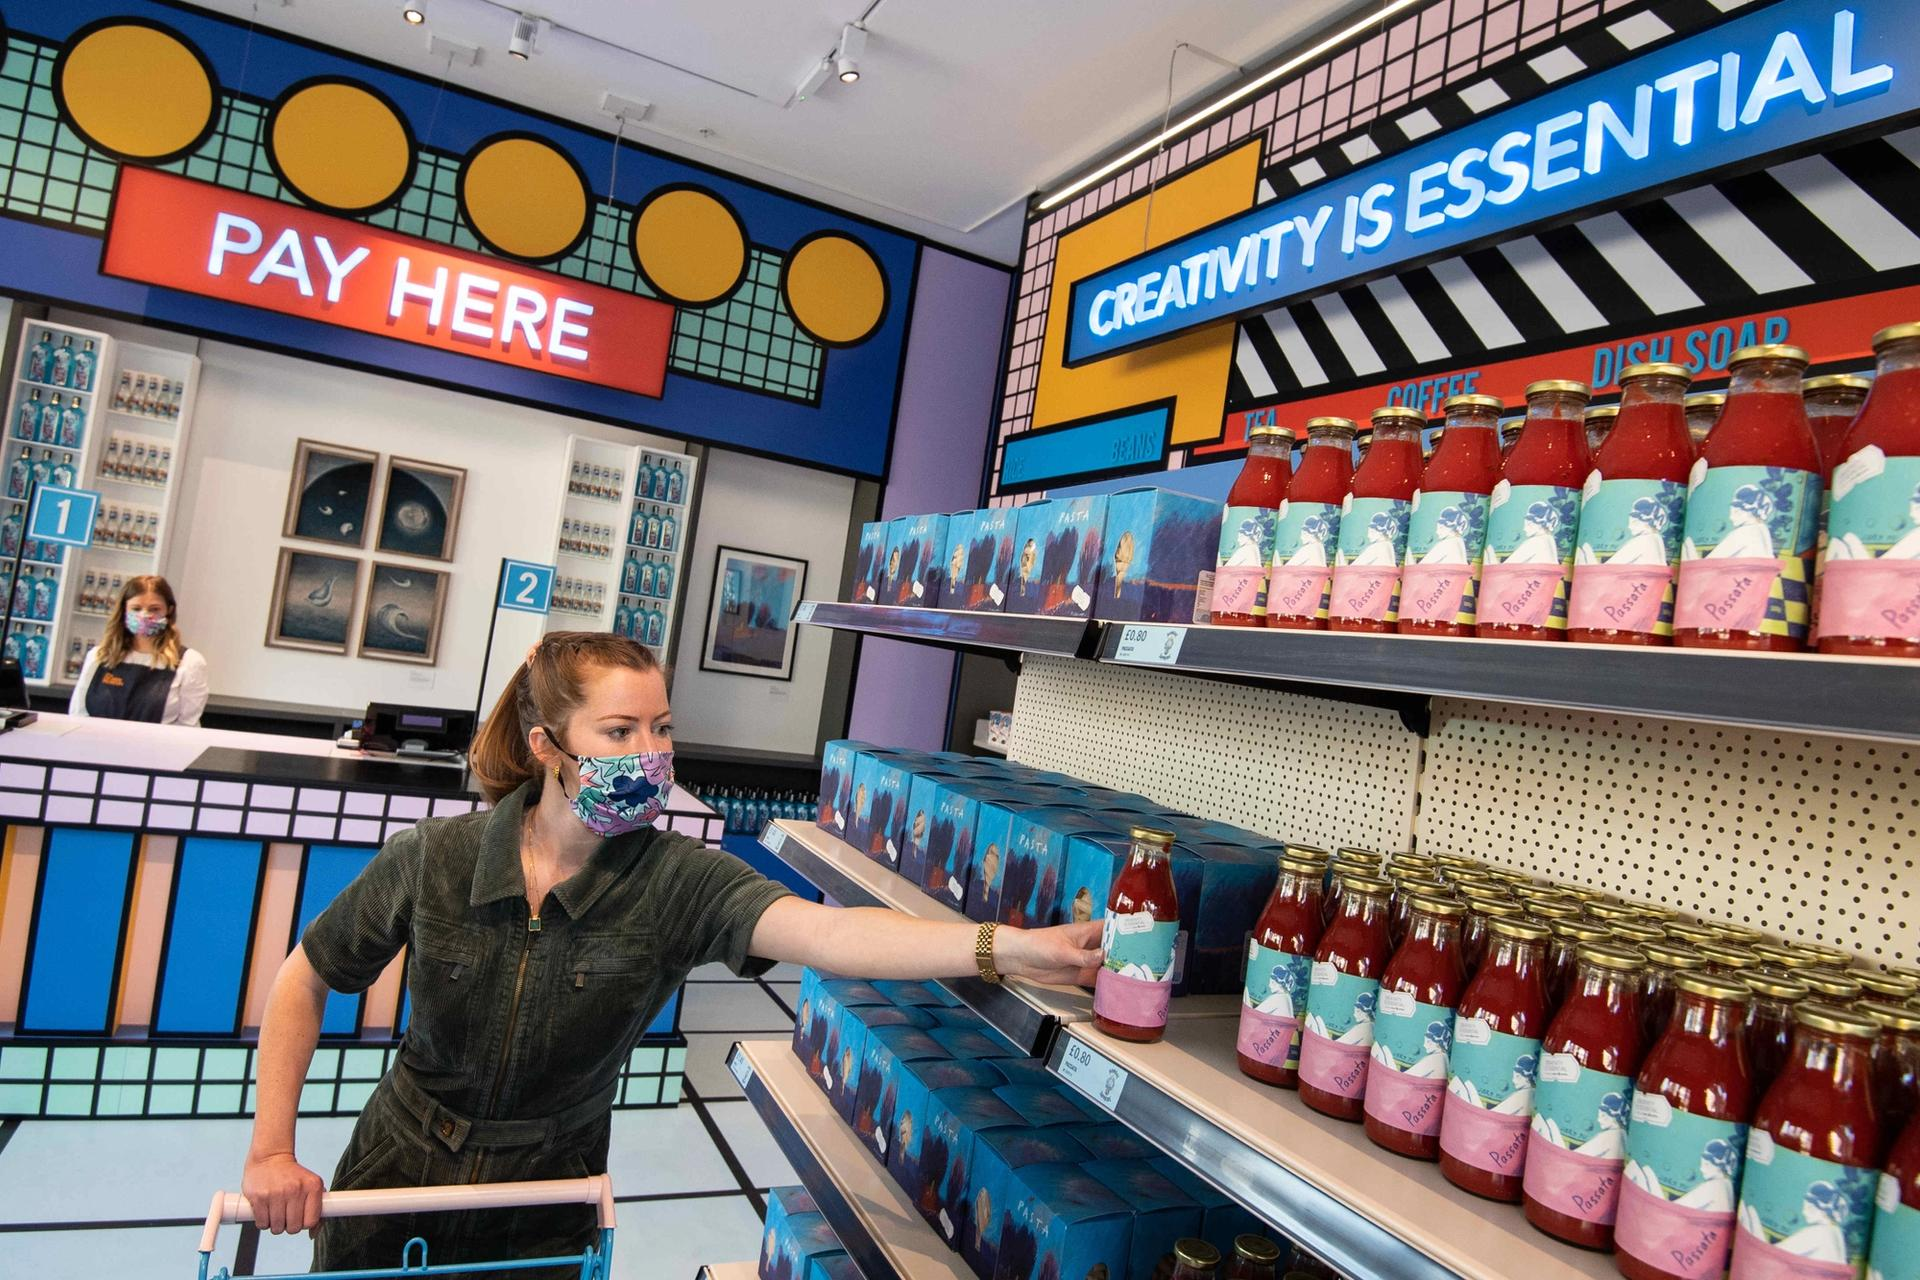 The Design Museum has opened a pop-up supermarket Courtesy of Design Museum, London